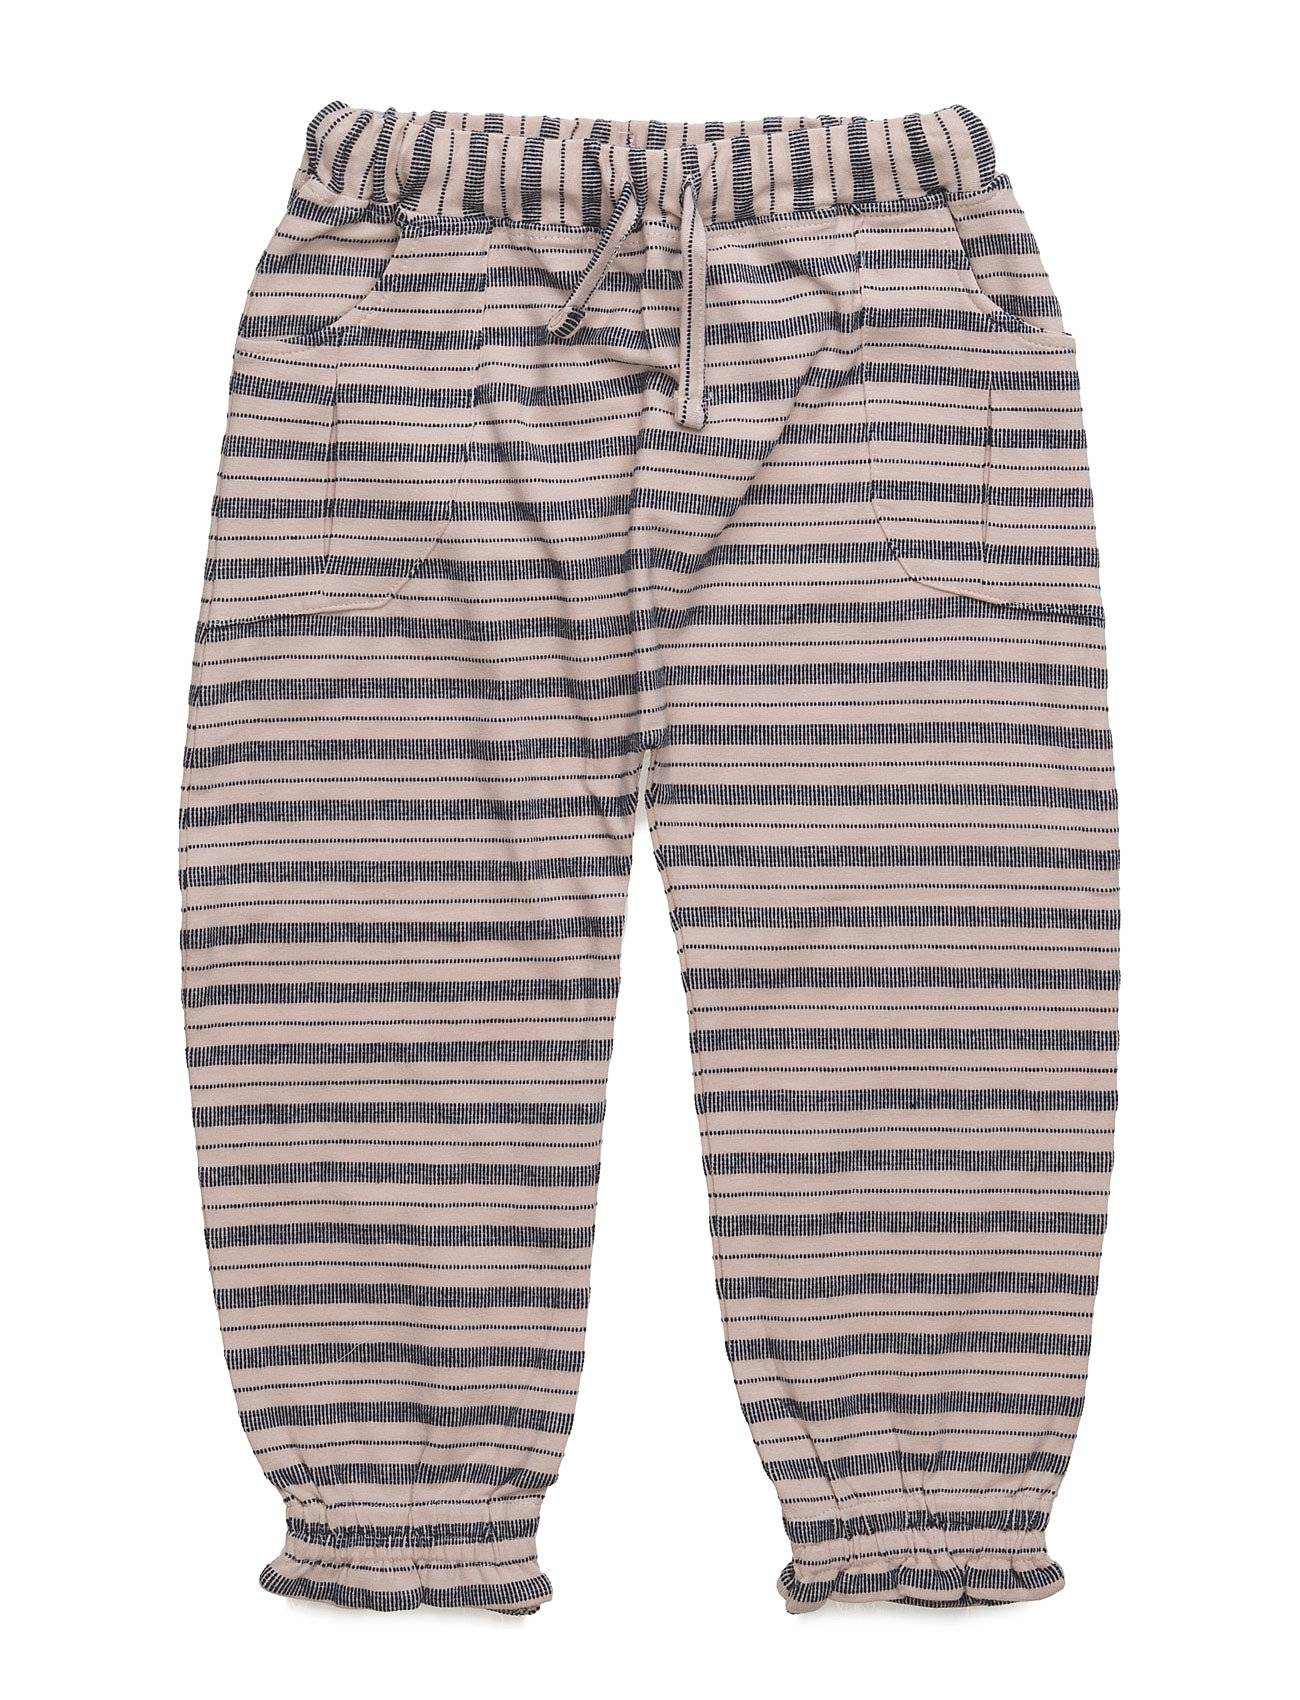 Noa Noa Miniature Trousers